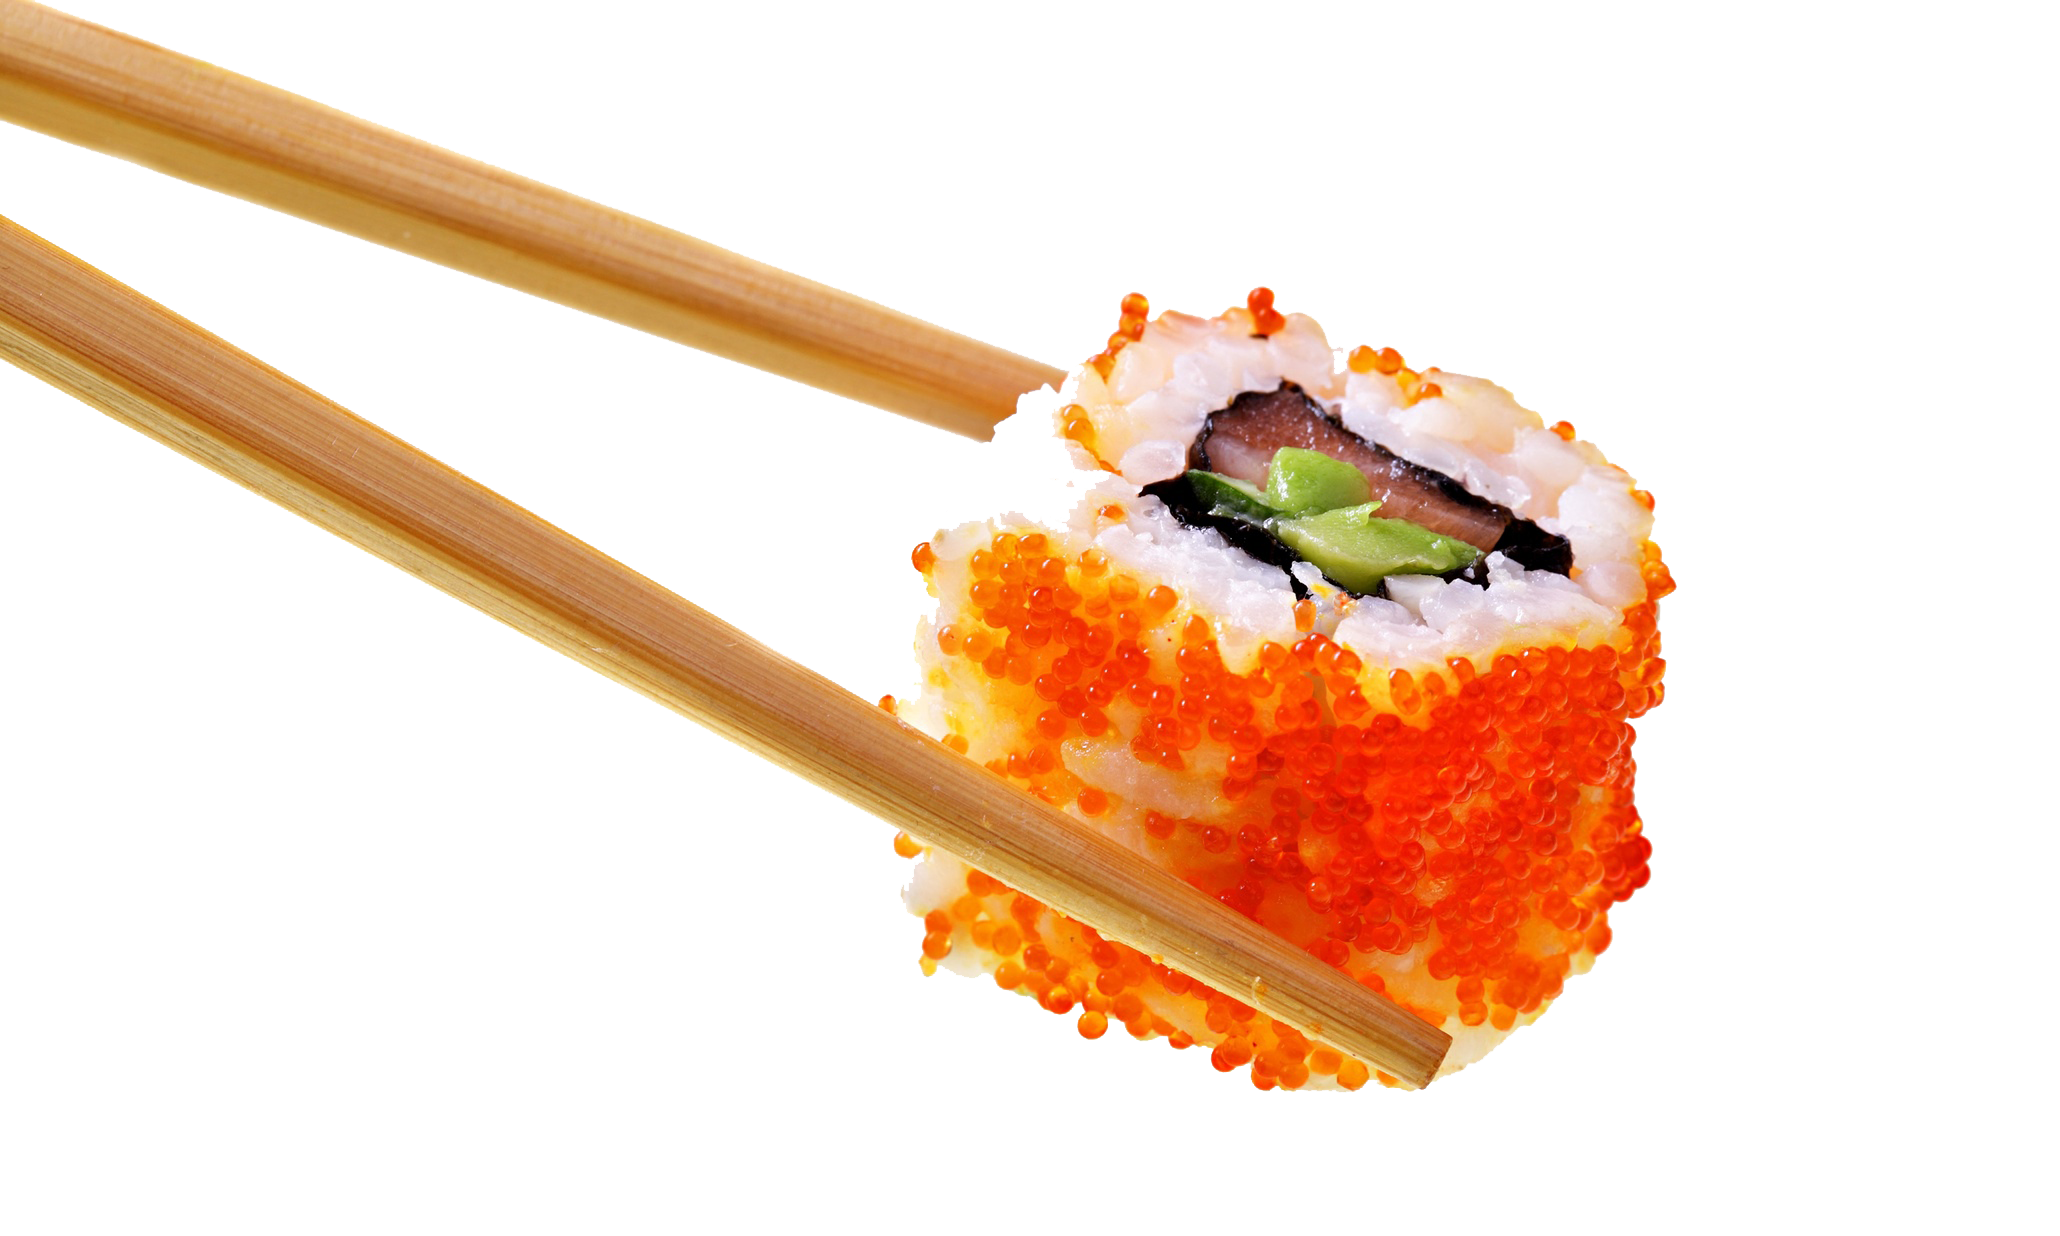 Sushi roll png. Clipart hd transparentpng image png freeuse